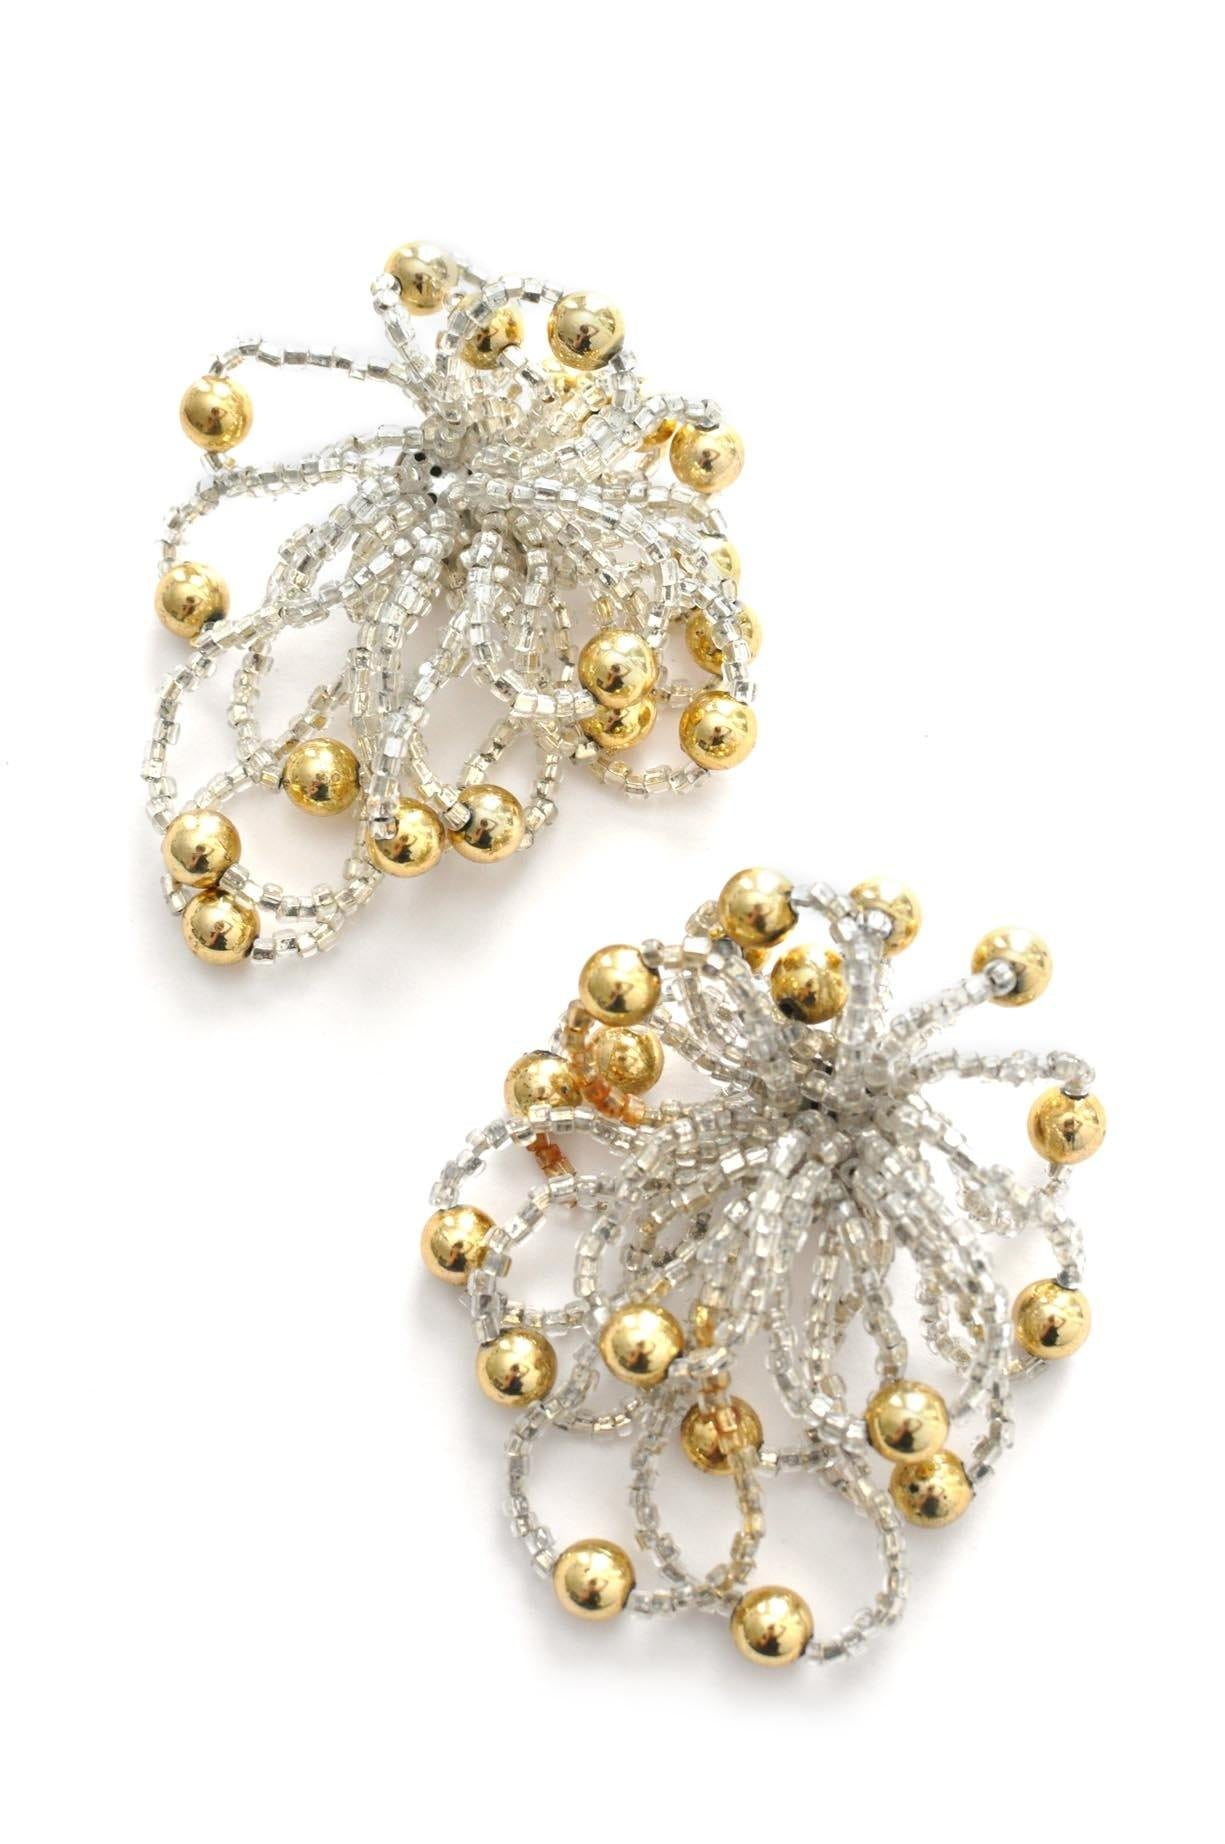 Vintage silver and gold beaded statement earrings from Sweet & Spark.